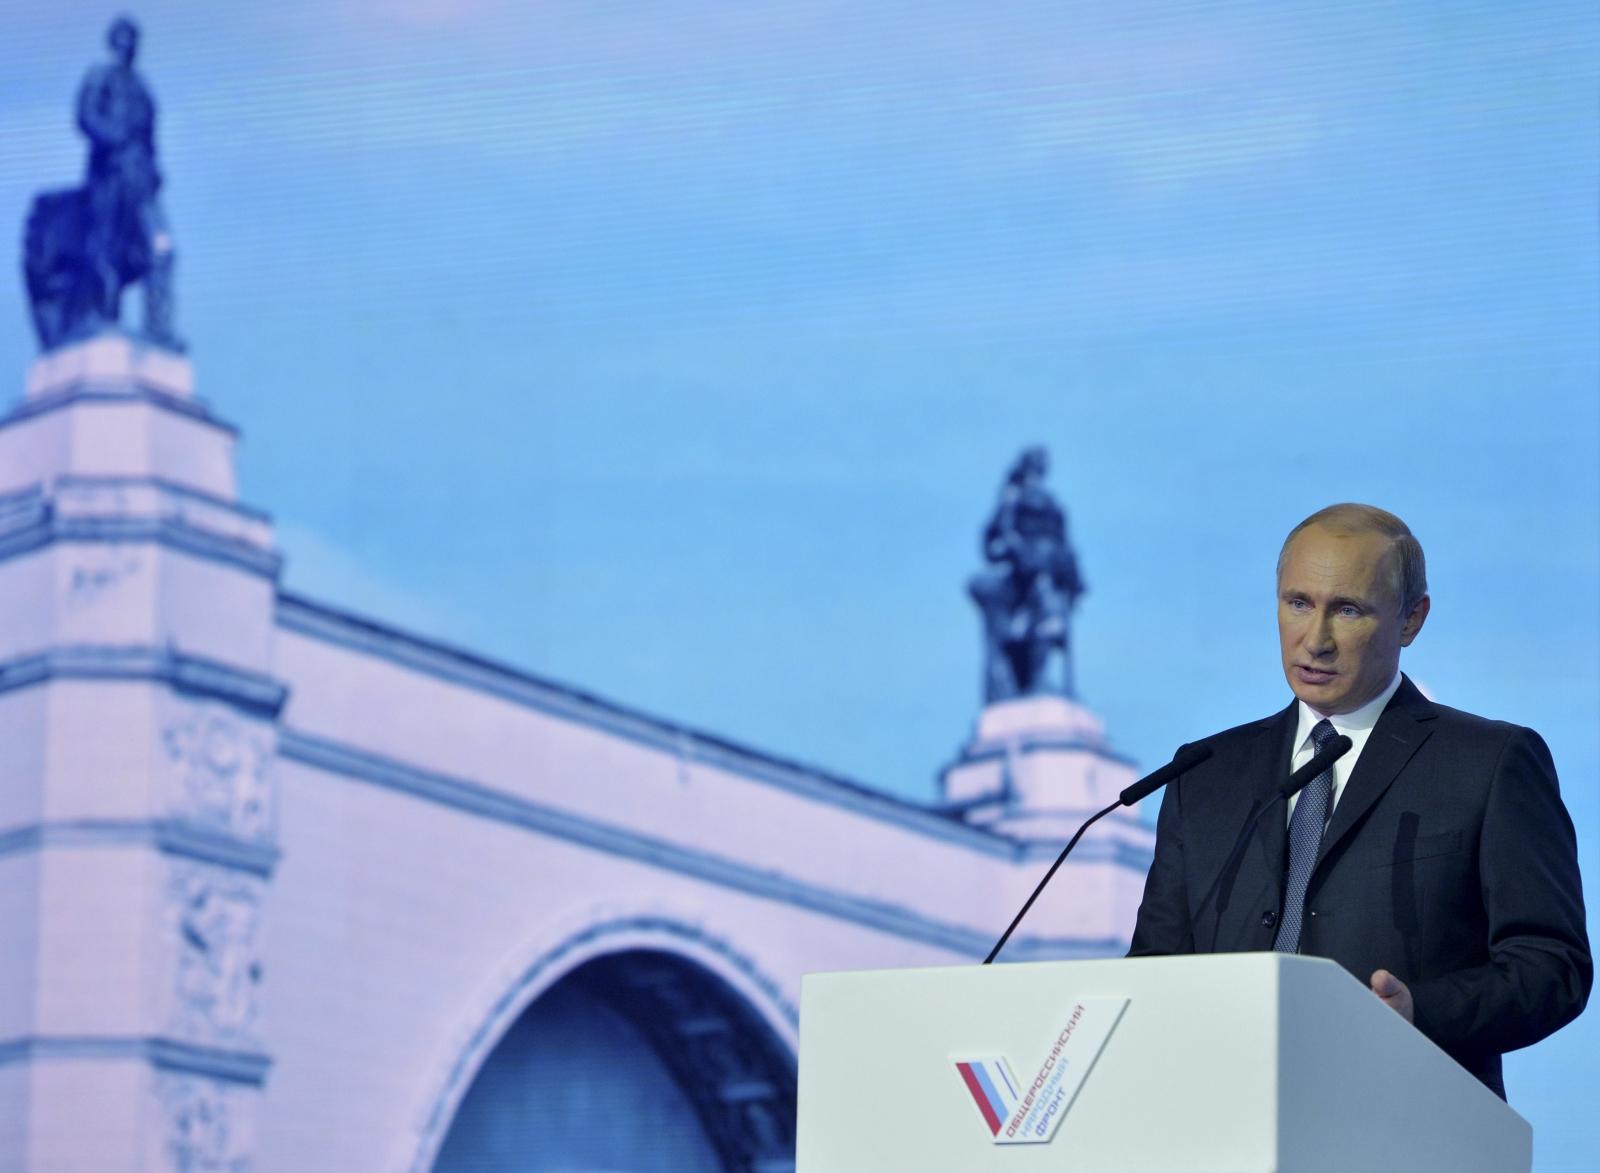 Putin delivers his speech in Moscow today at a meeting of the All-Russia People's Front (Reuters)